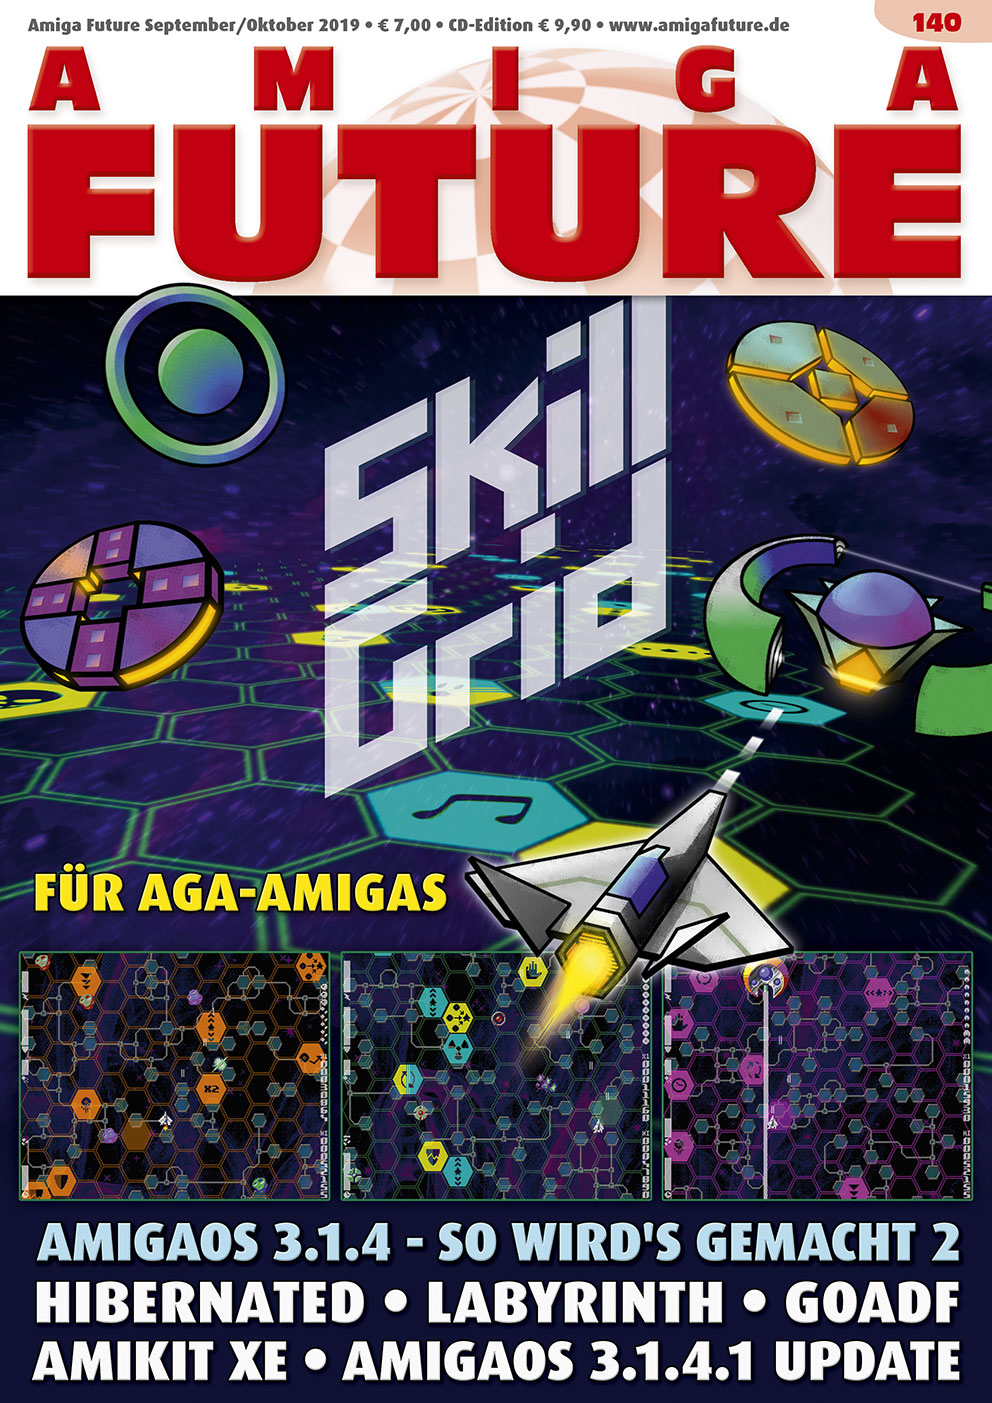 Amiga Future Issue 140